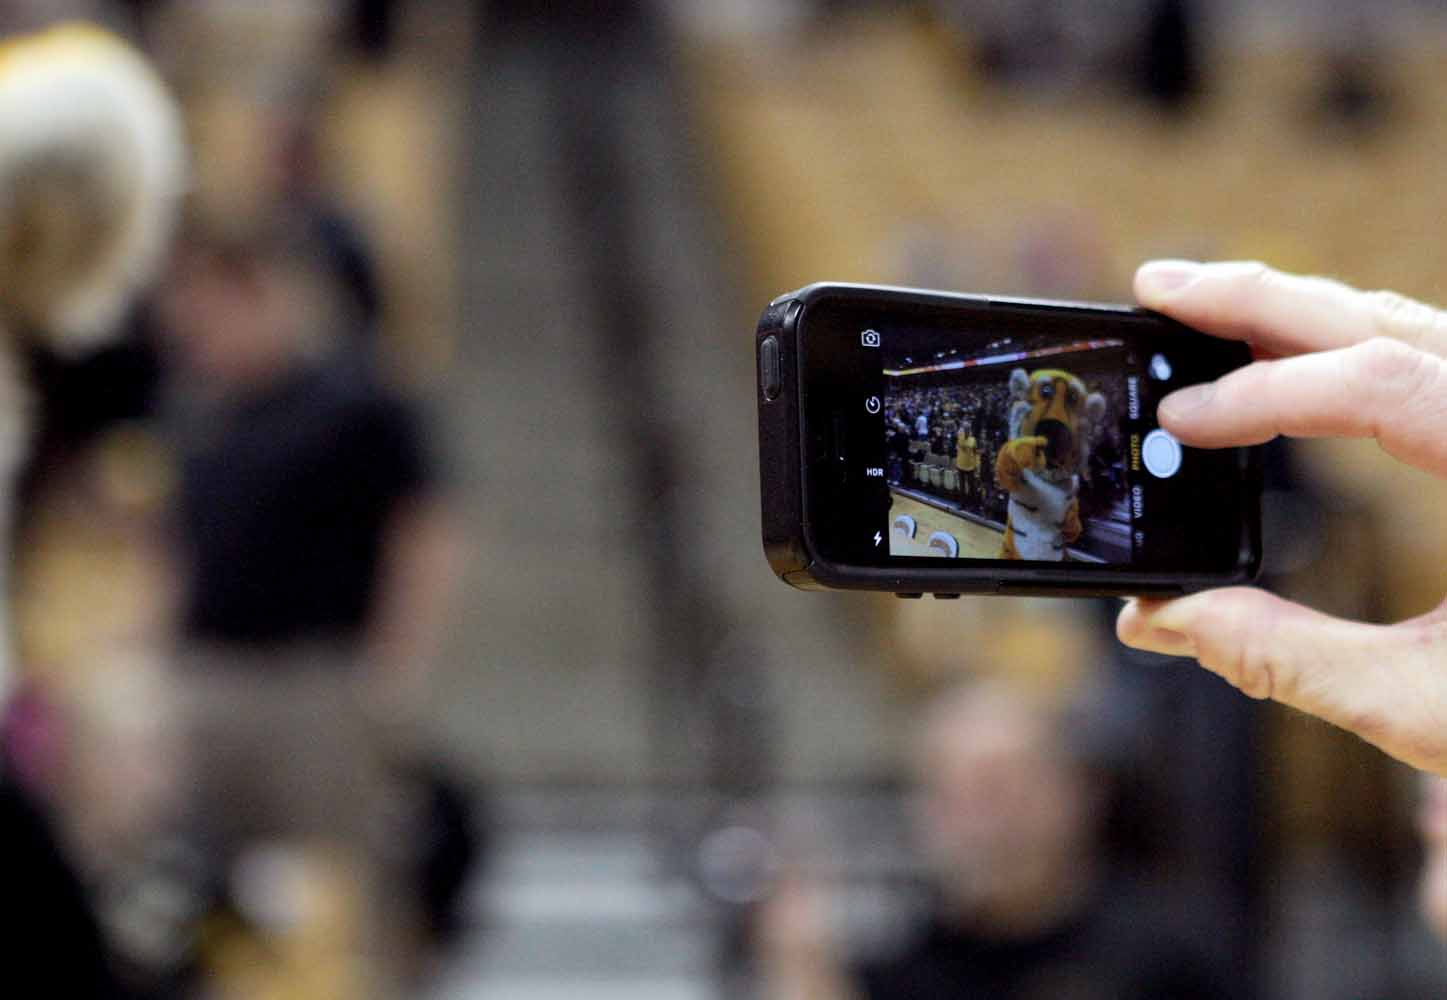 A member of the media snaps a photo of Truman the Tiger on his iPhone to post to social media before the game against Alabama Thursday evening, Feb. 11, 2016.